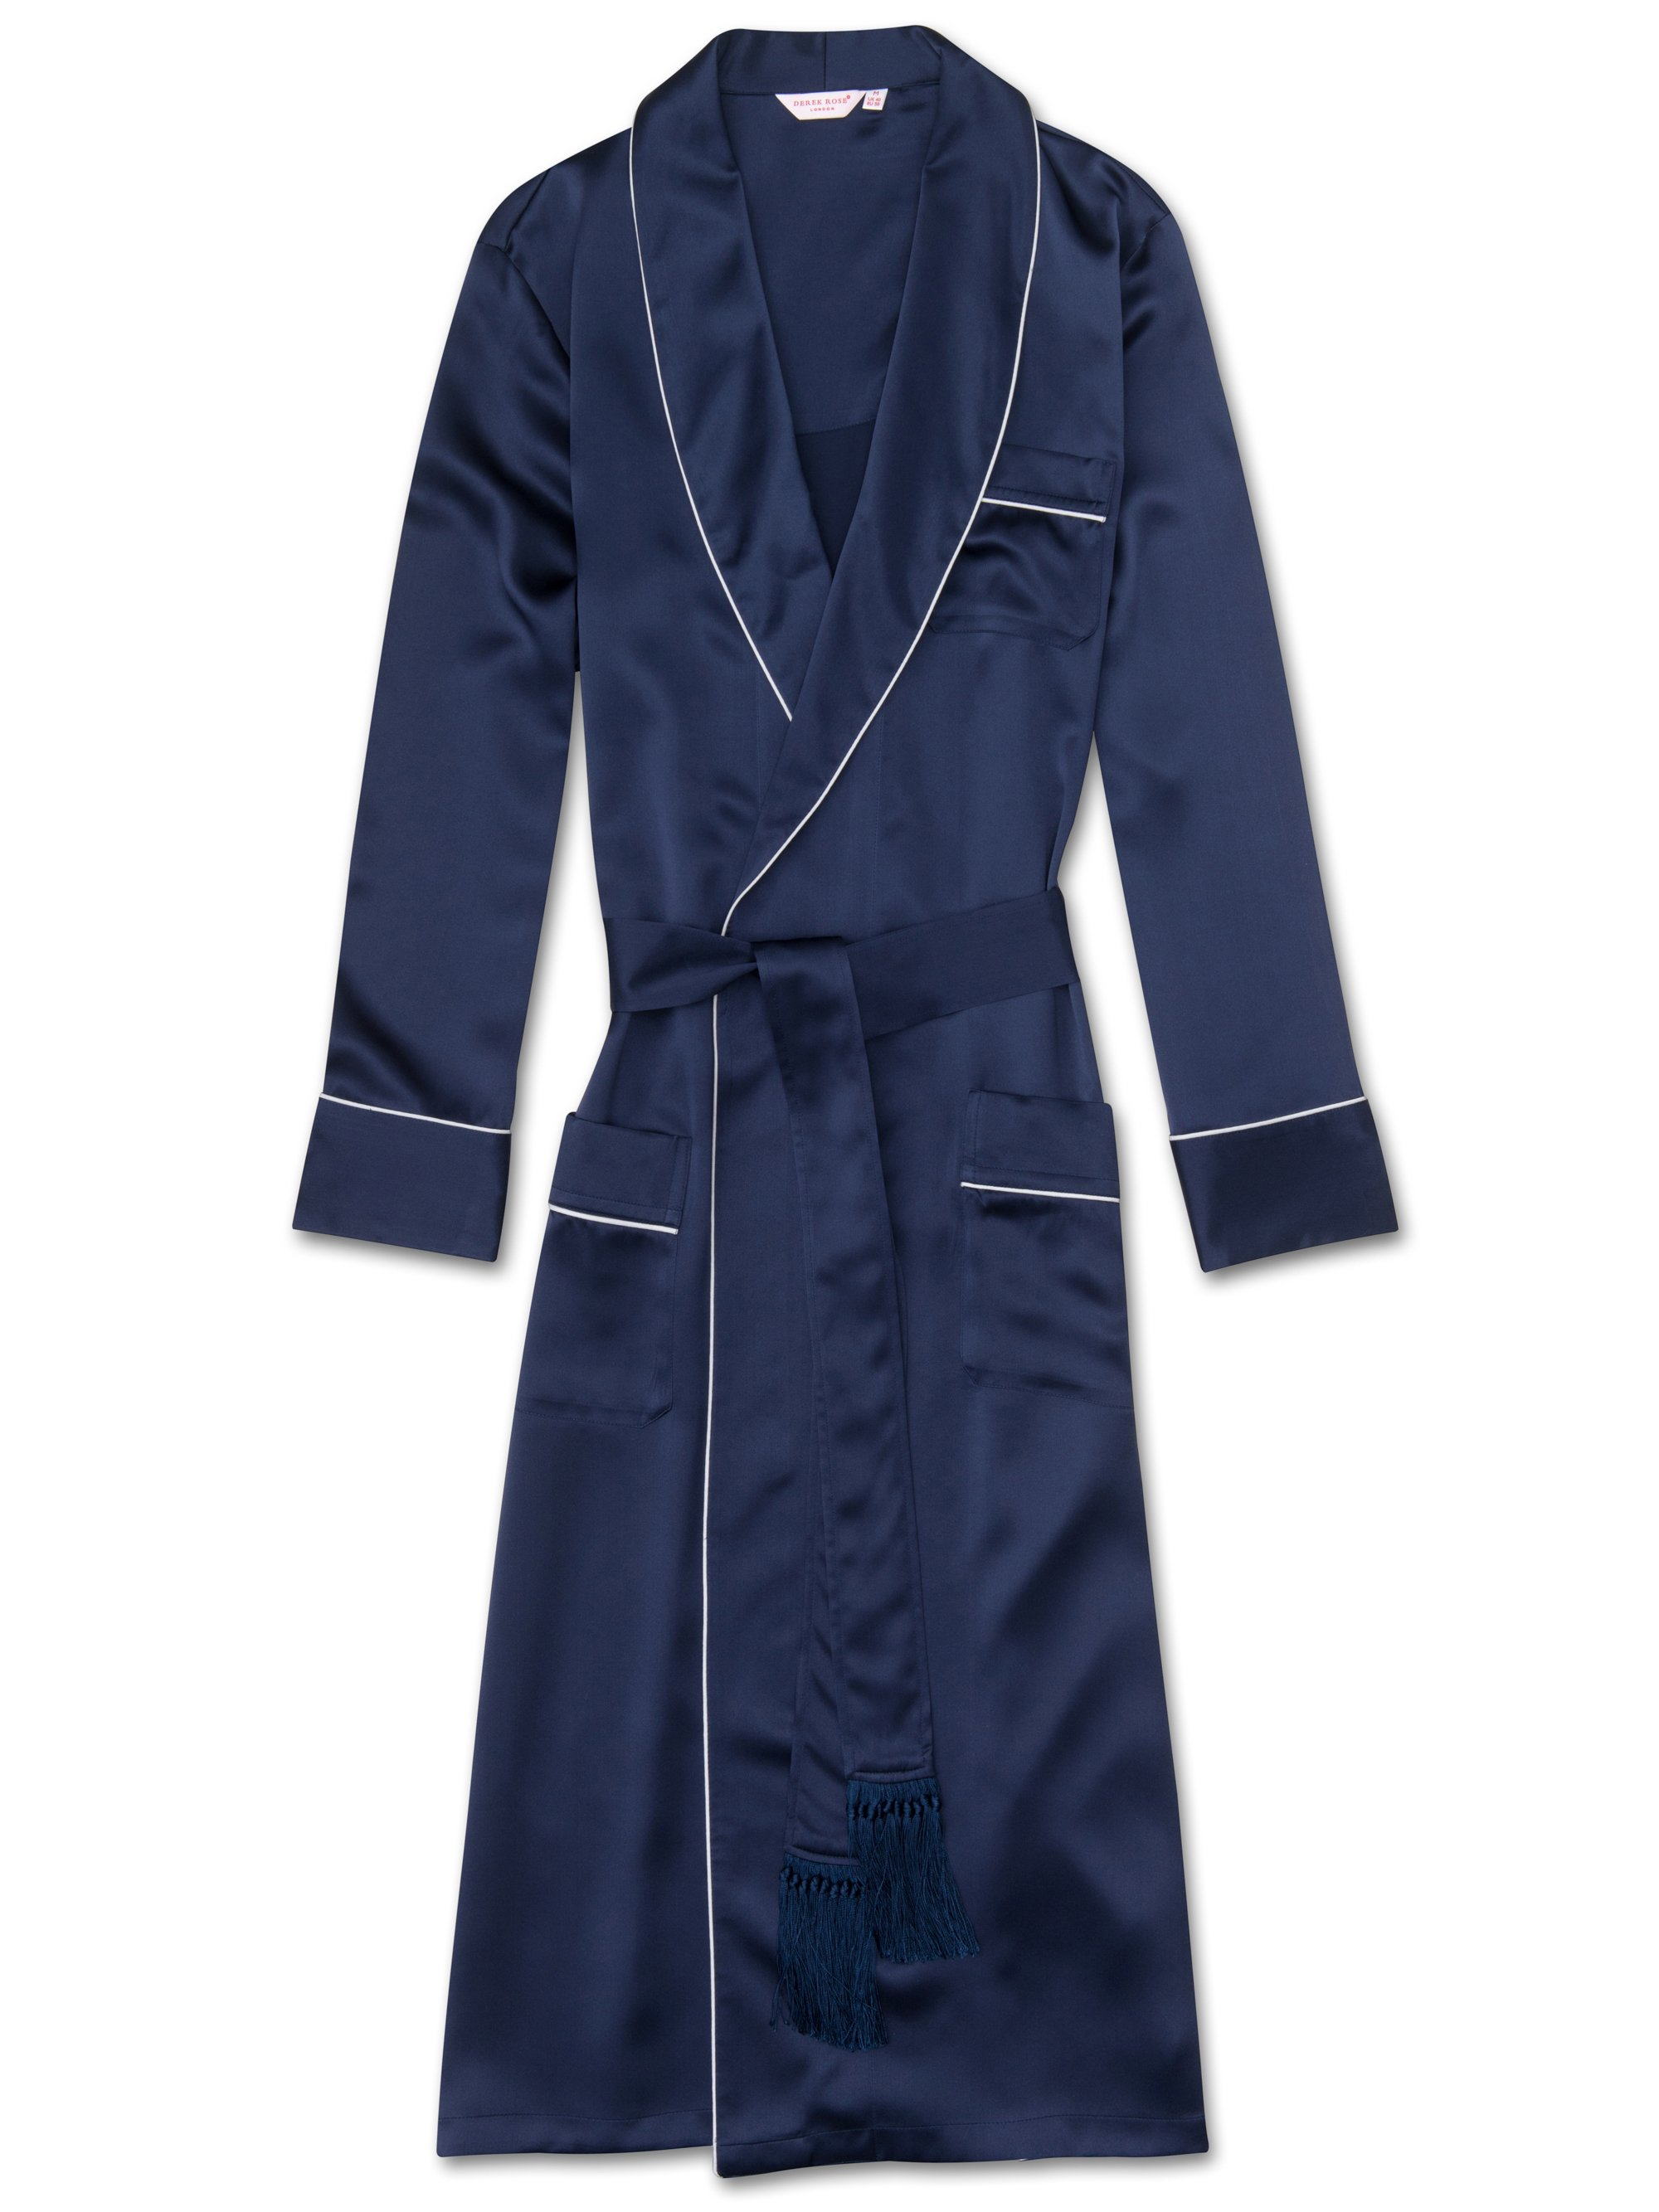 Men's Tasseled Belt Dressing Gown Bailey Pure Silk Satin Navy